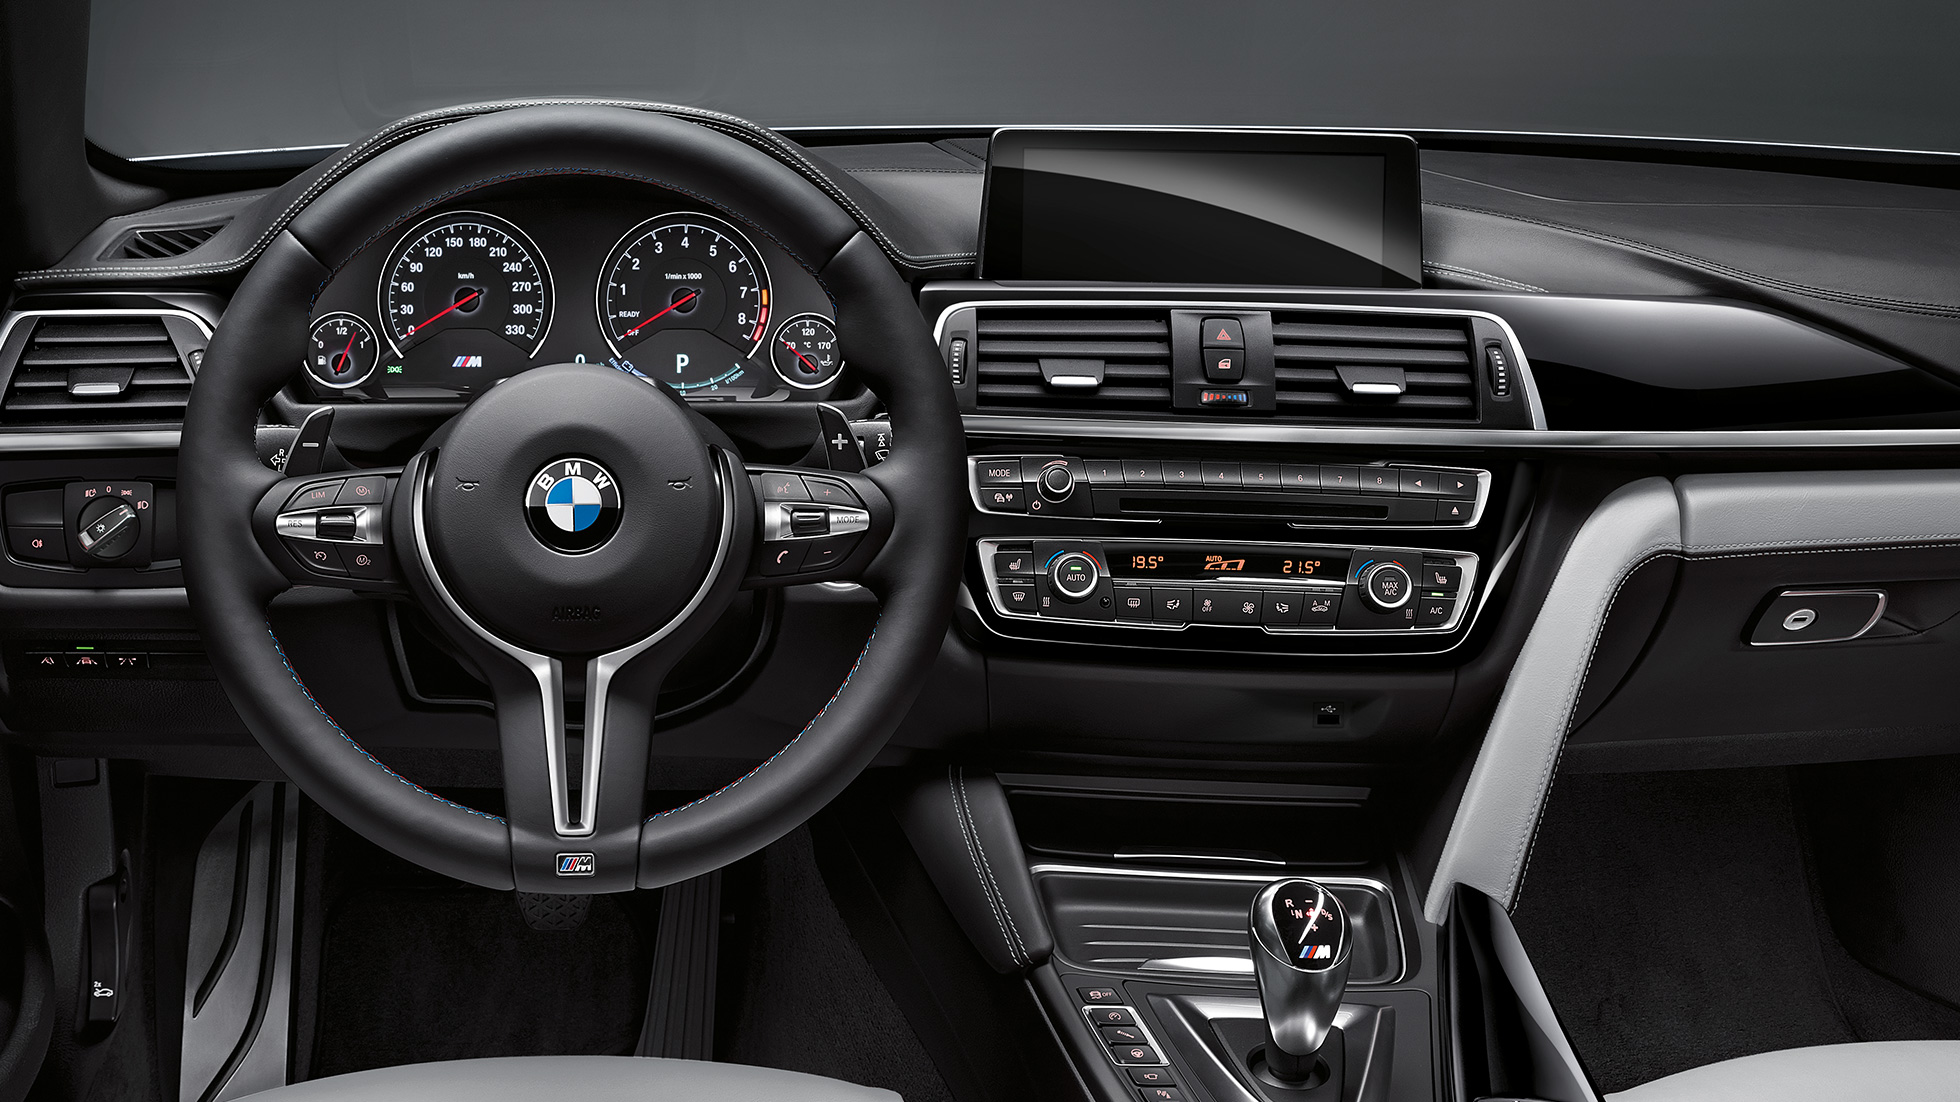 THE M4: BMW M4 Convertible | BMW.cc